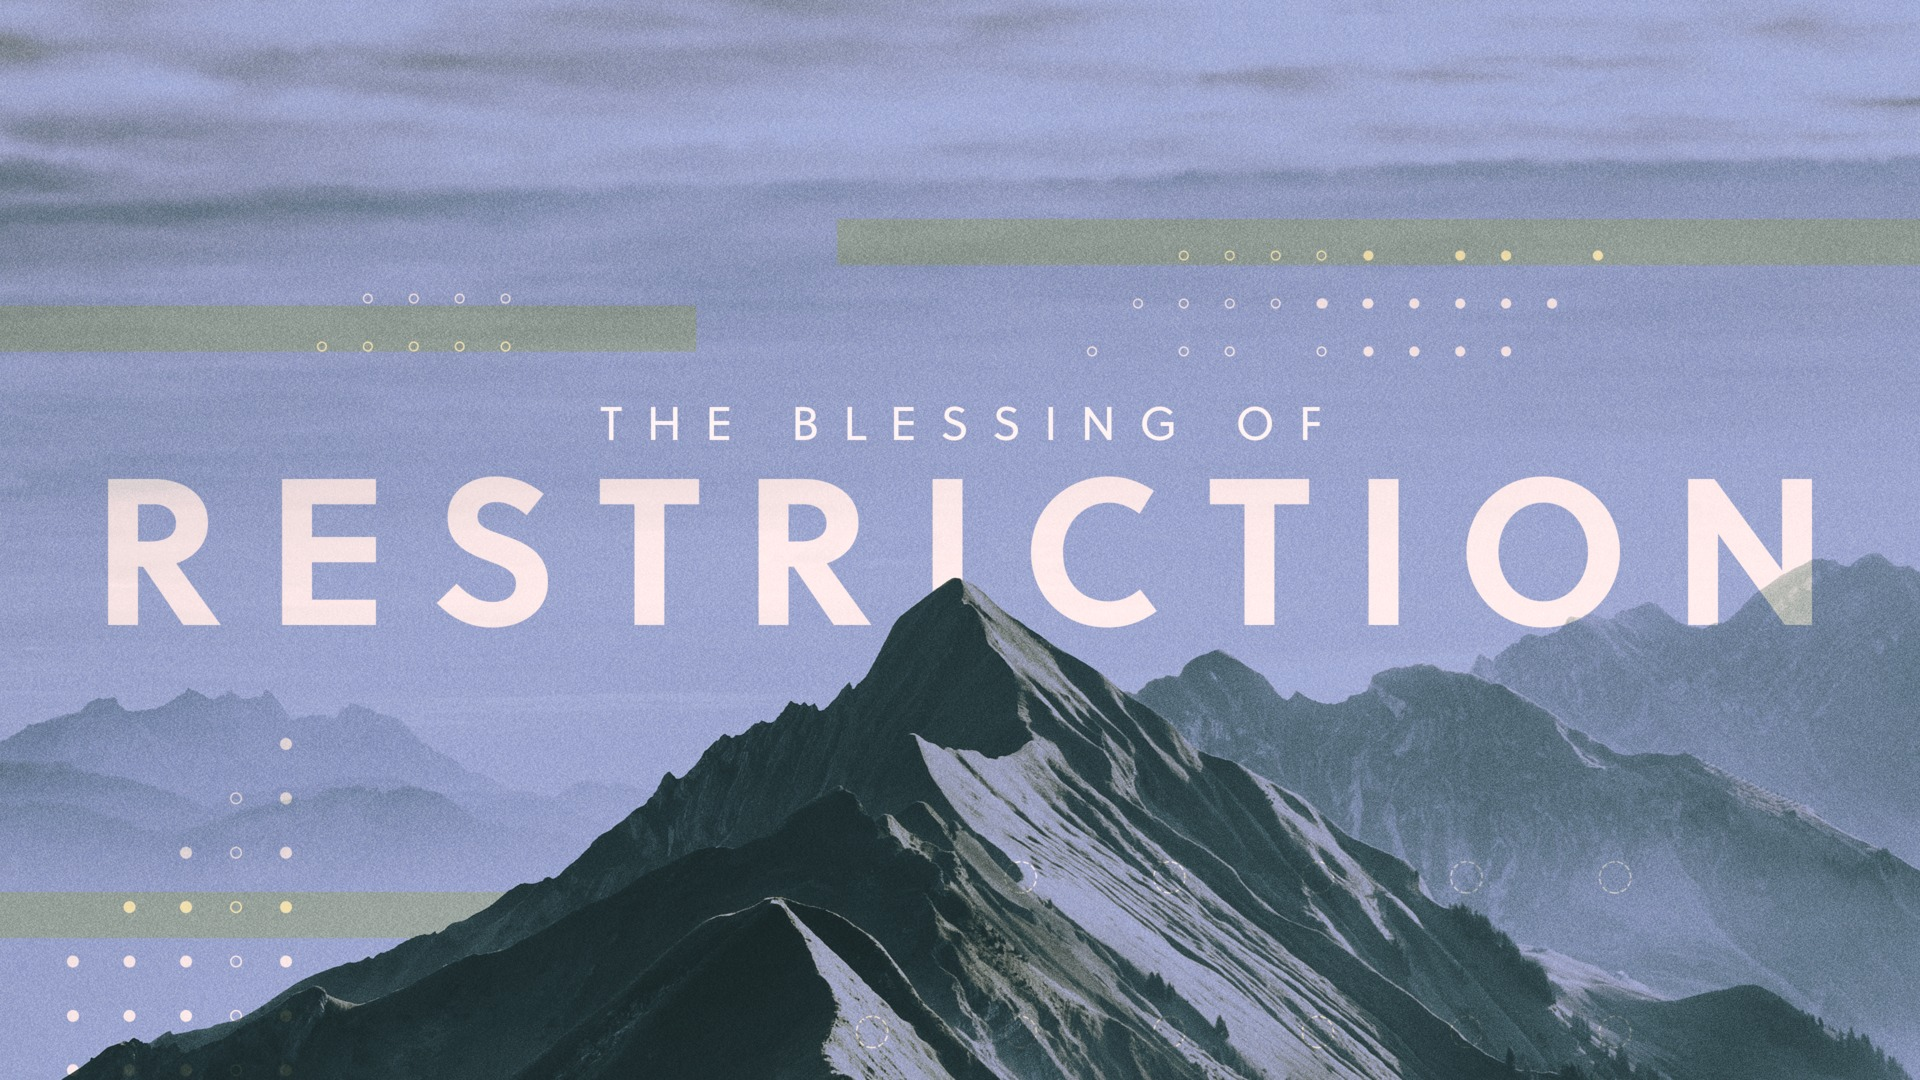 The Blessing of Restriction